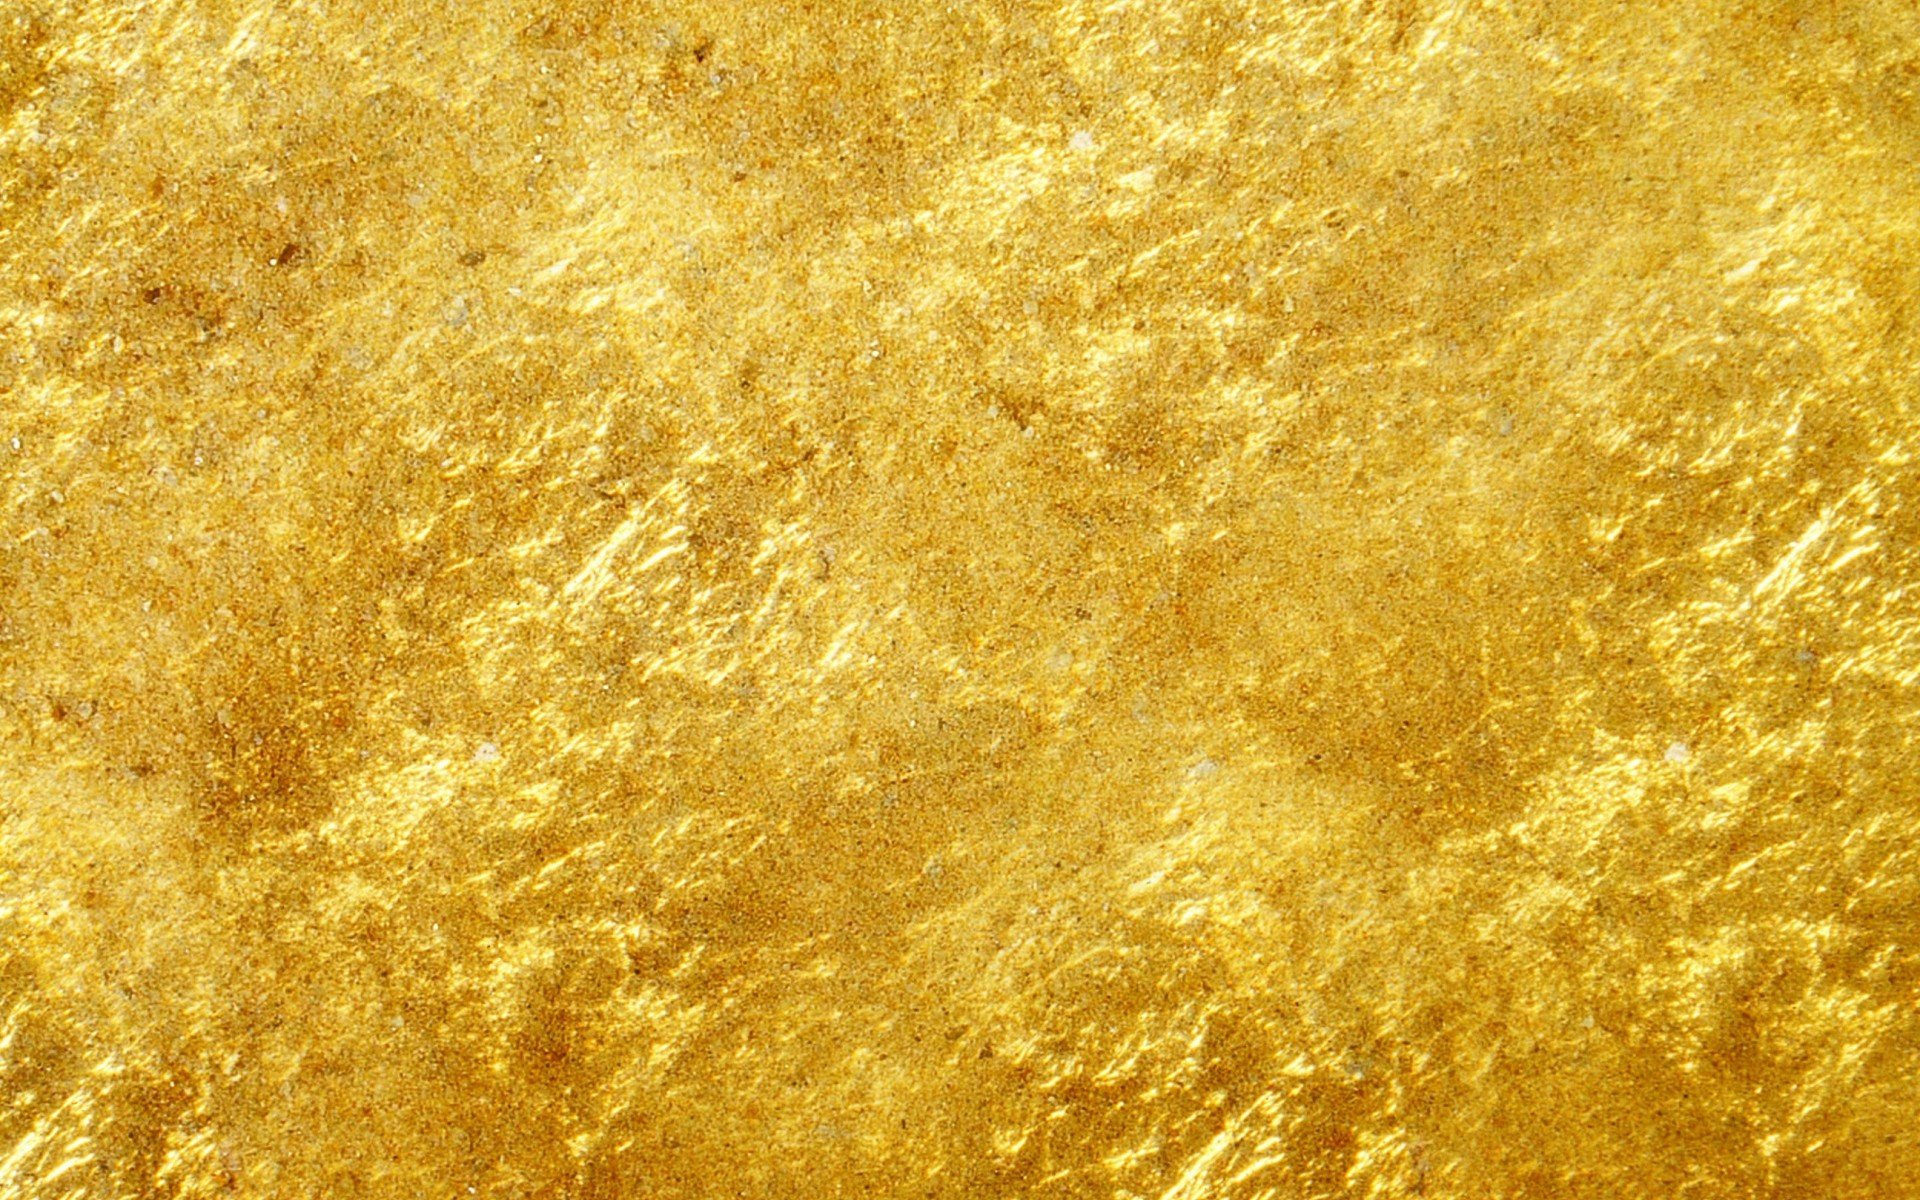 Download hd 1920x1200 Gold Abstract computer wallpaper ID:183276 for free